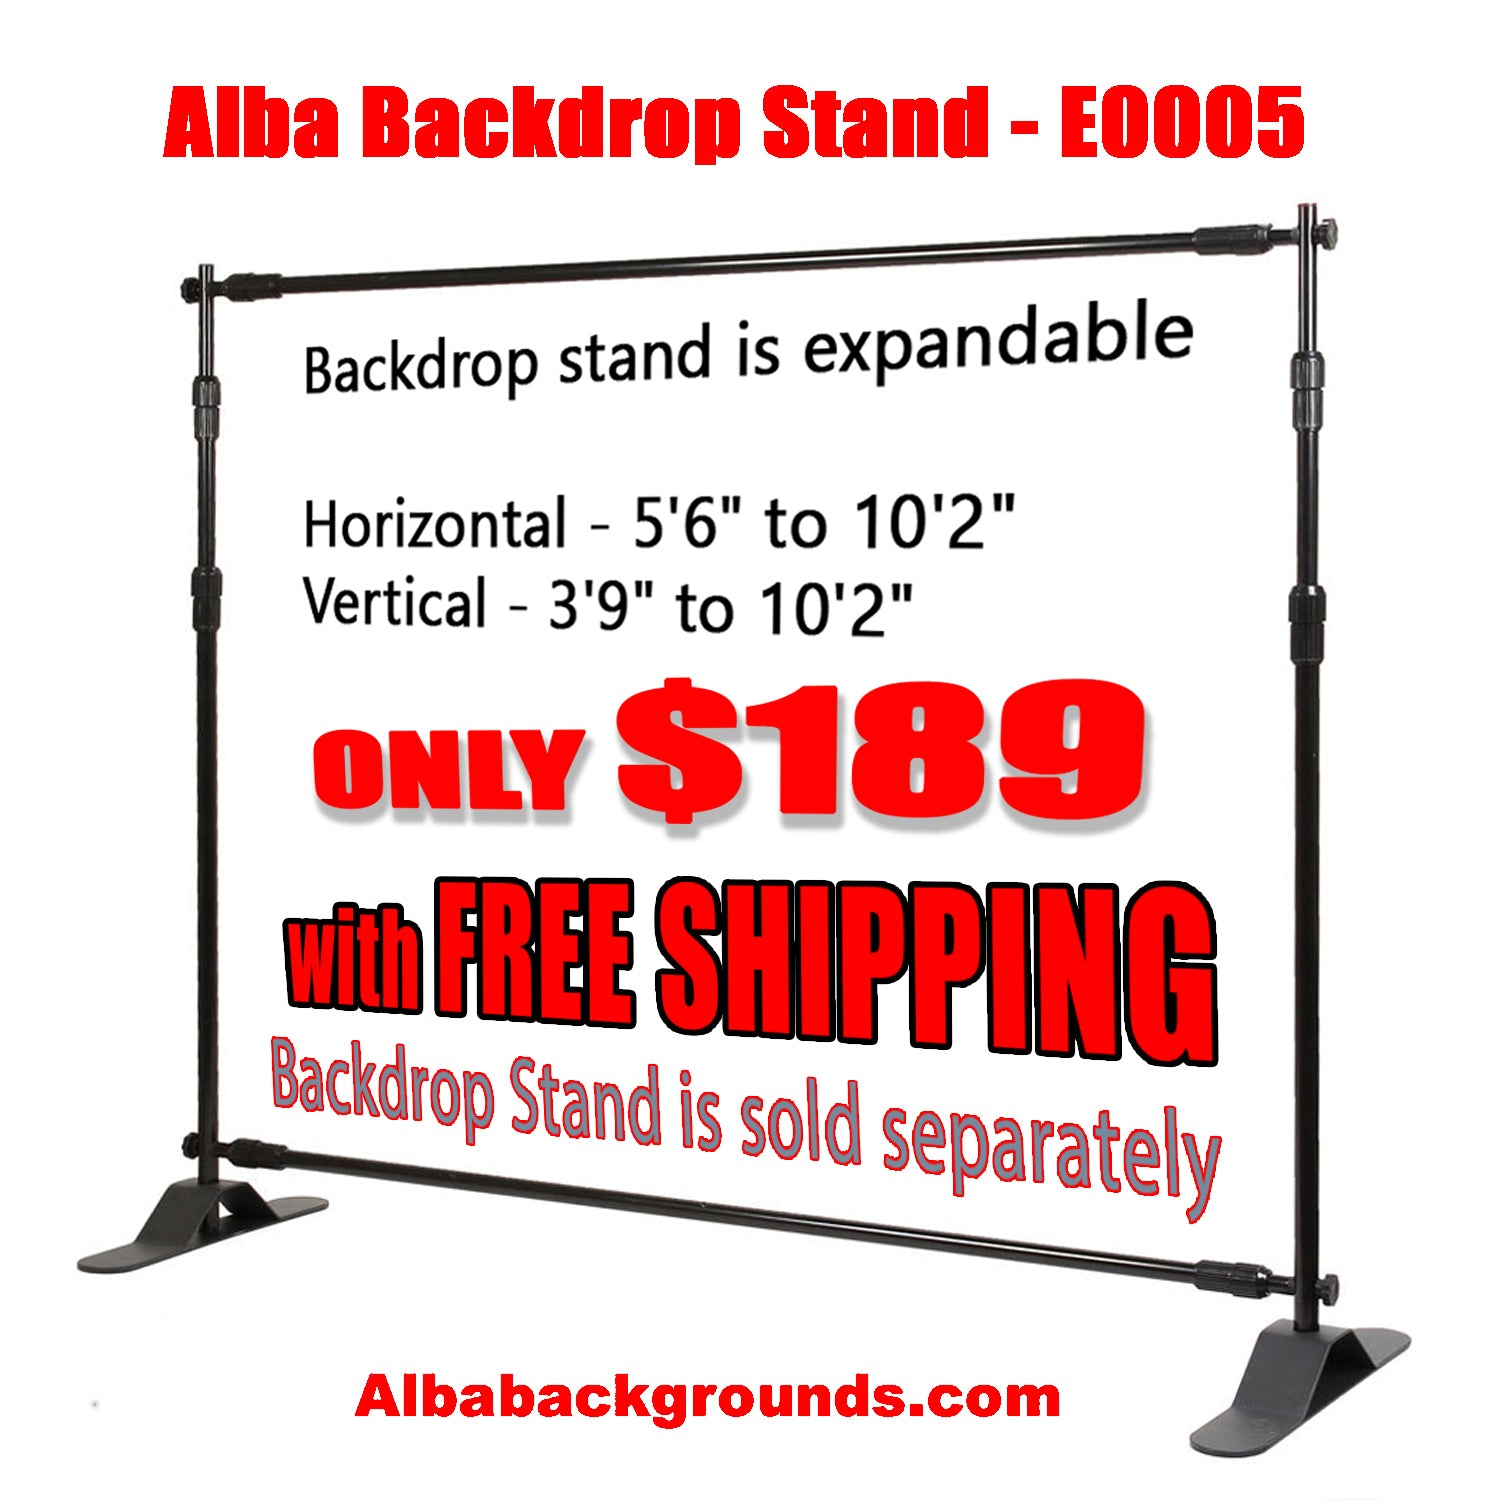 Backdrop Stands | Alba Backgrounds